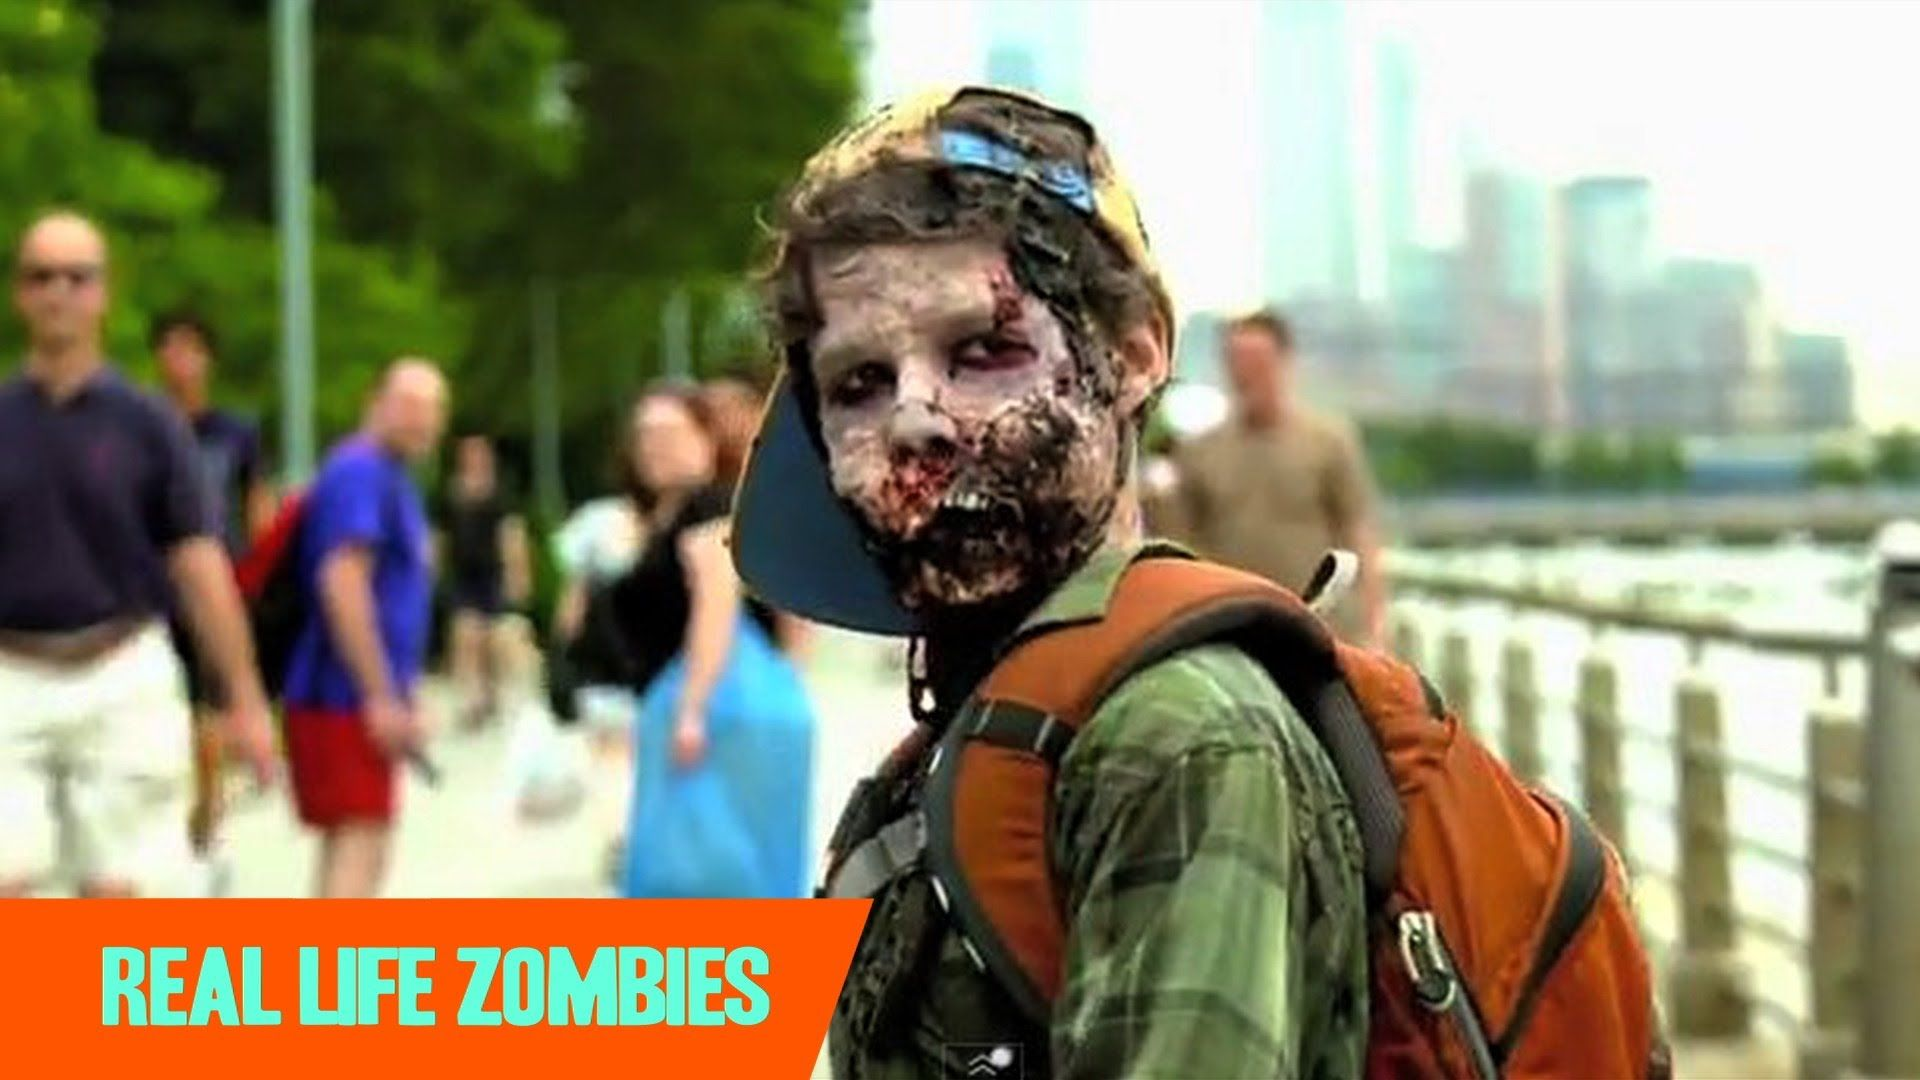 possibly real zombie captured - HD 1920×1080